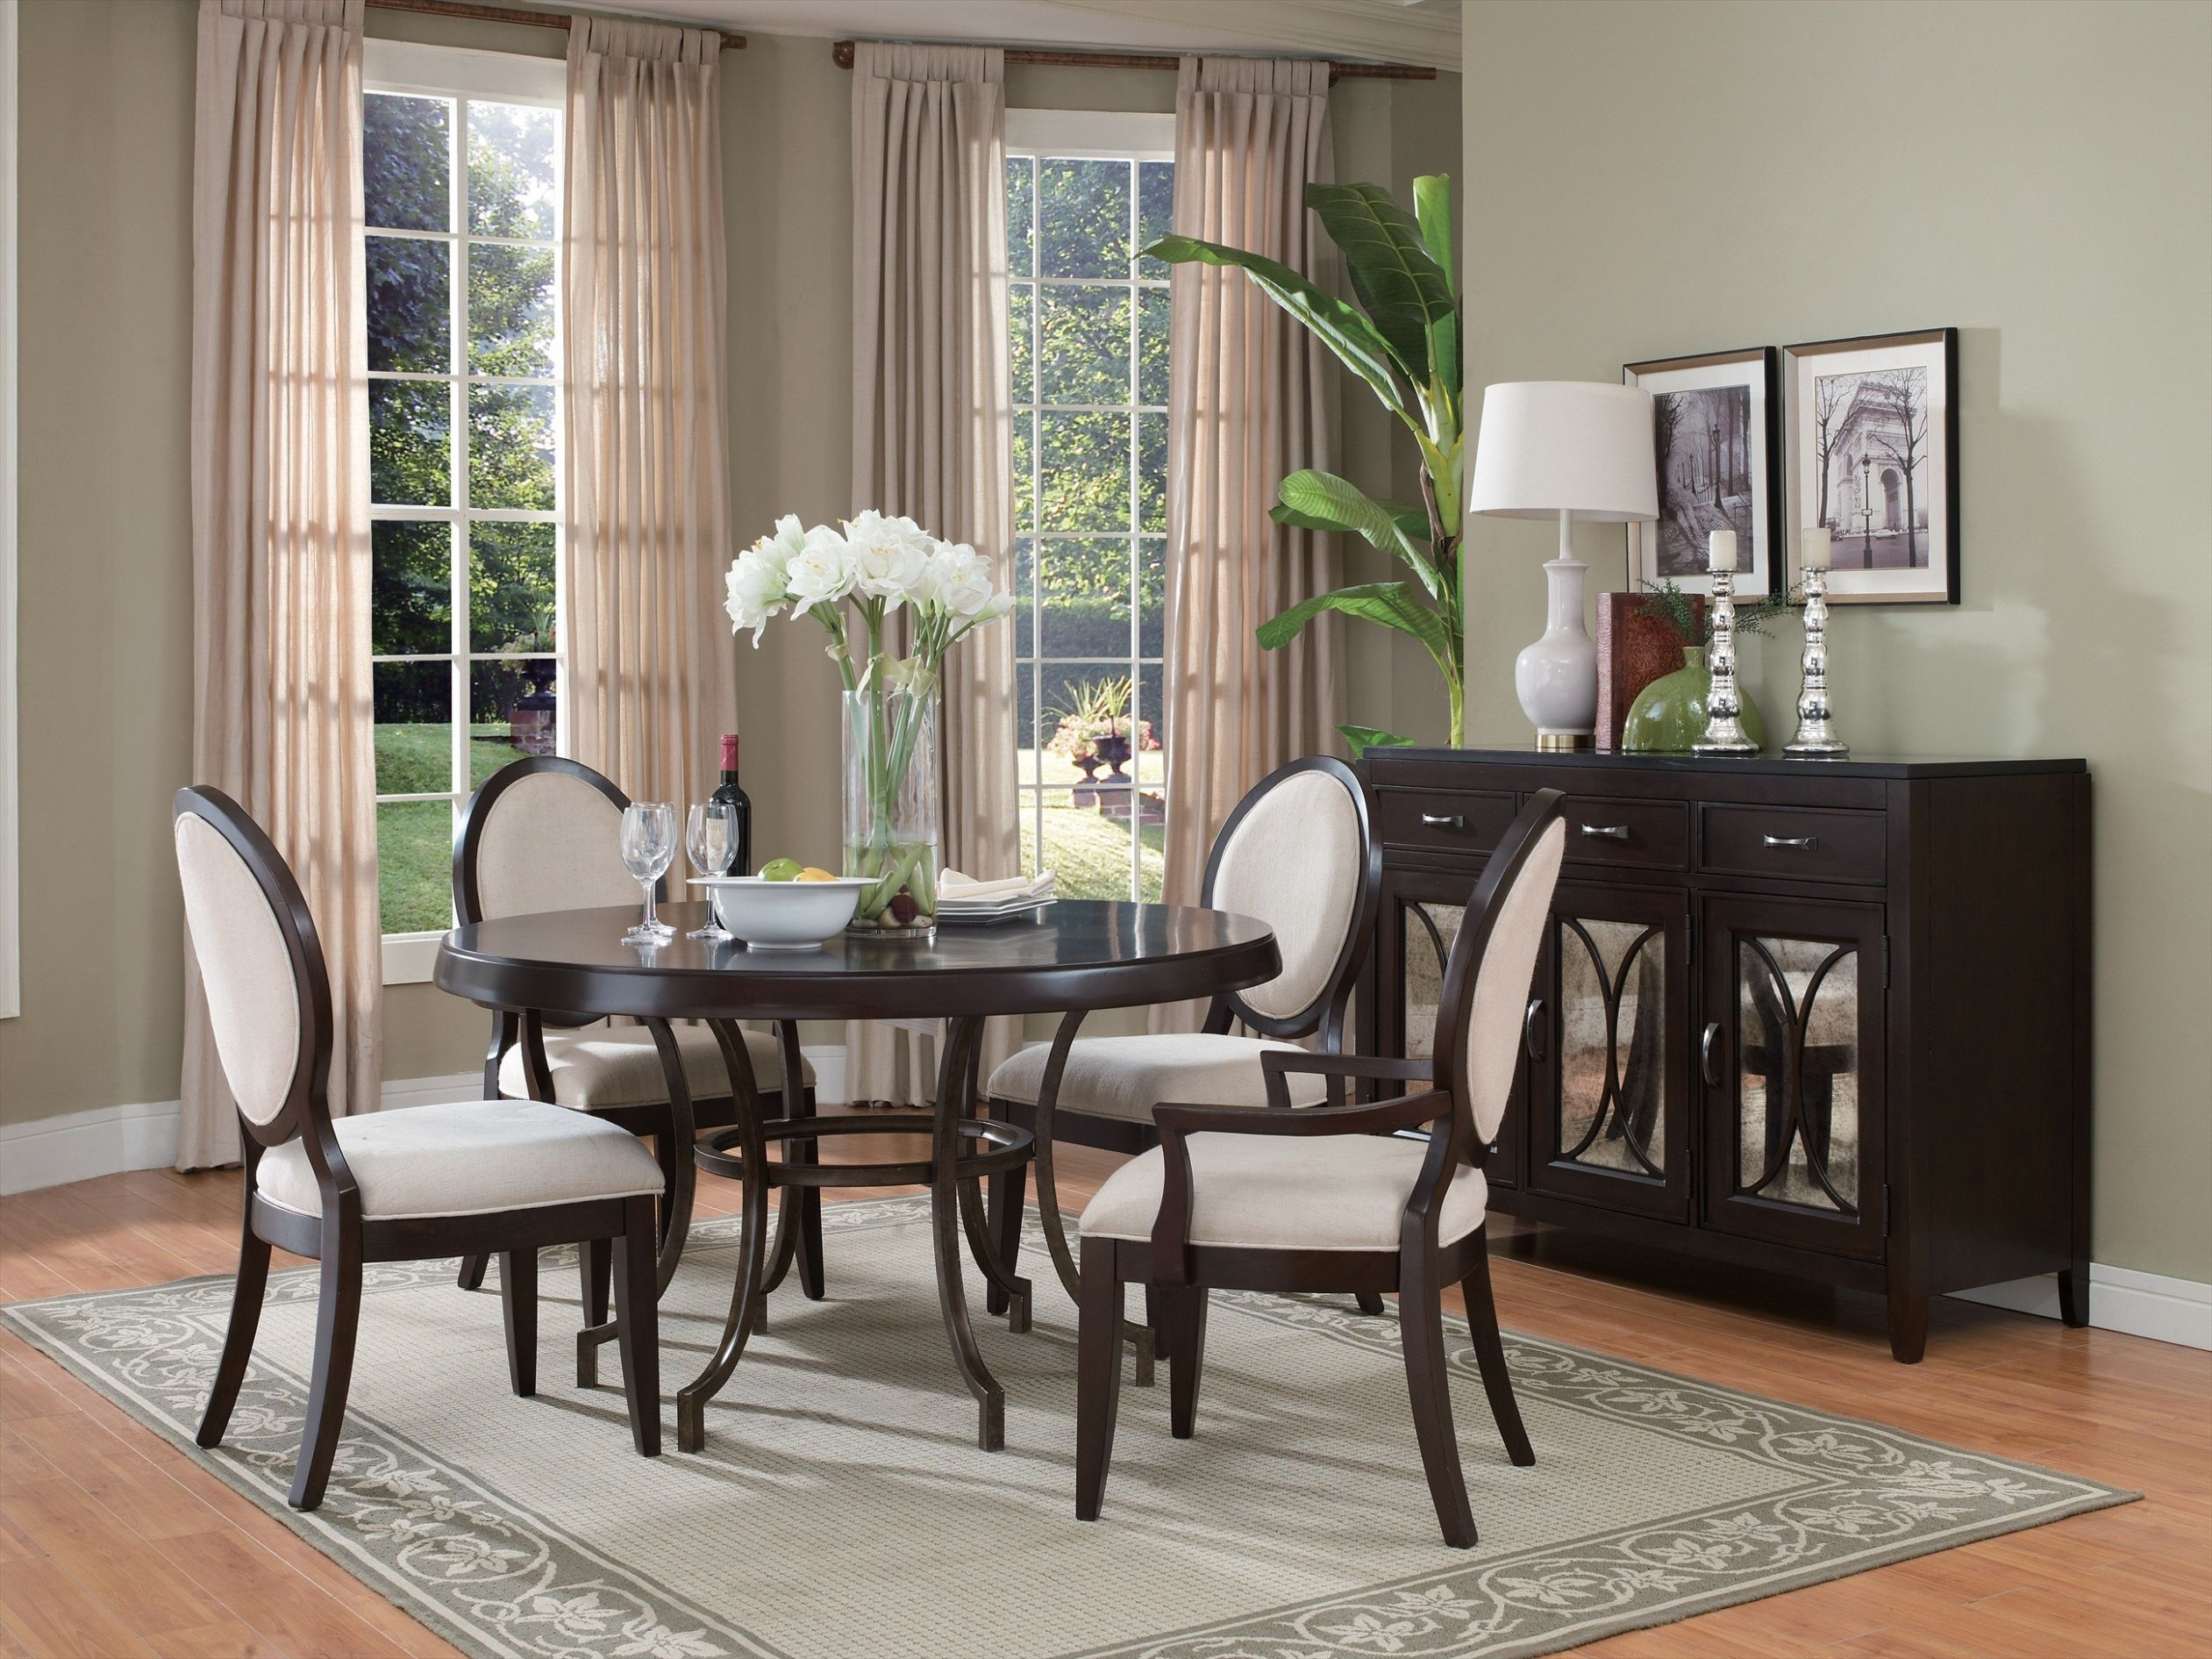 square dining room buffet tables | Dreamehome - dining room ideas with round table